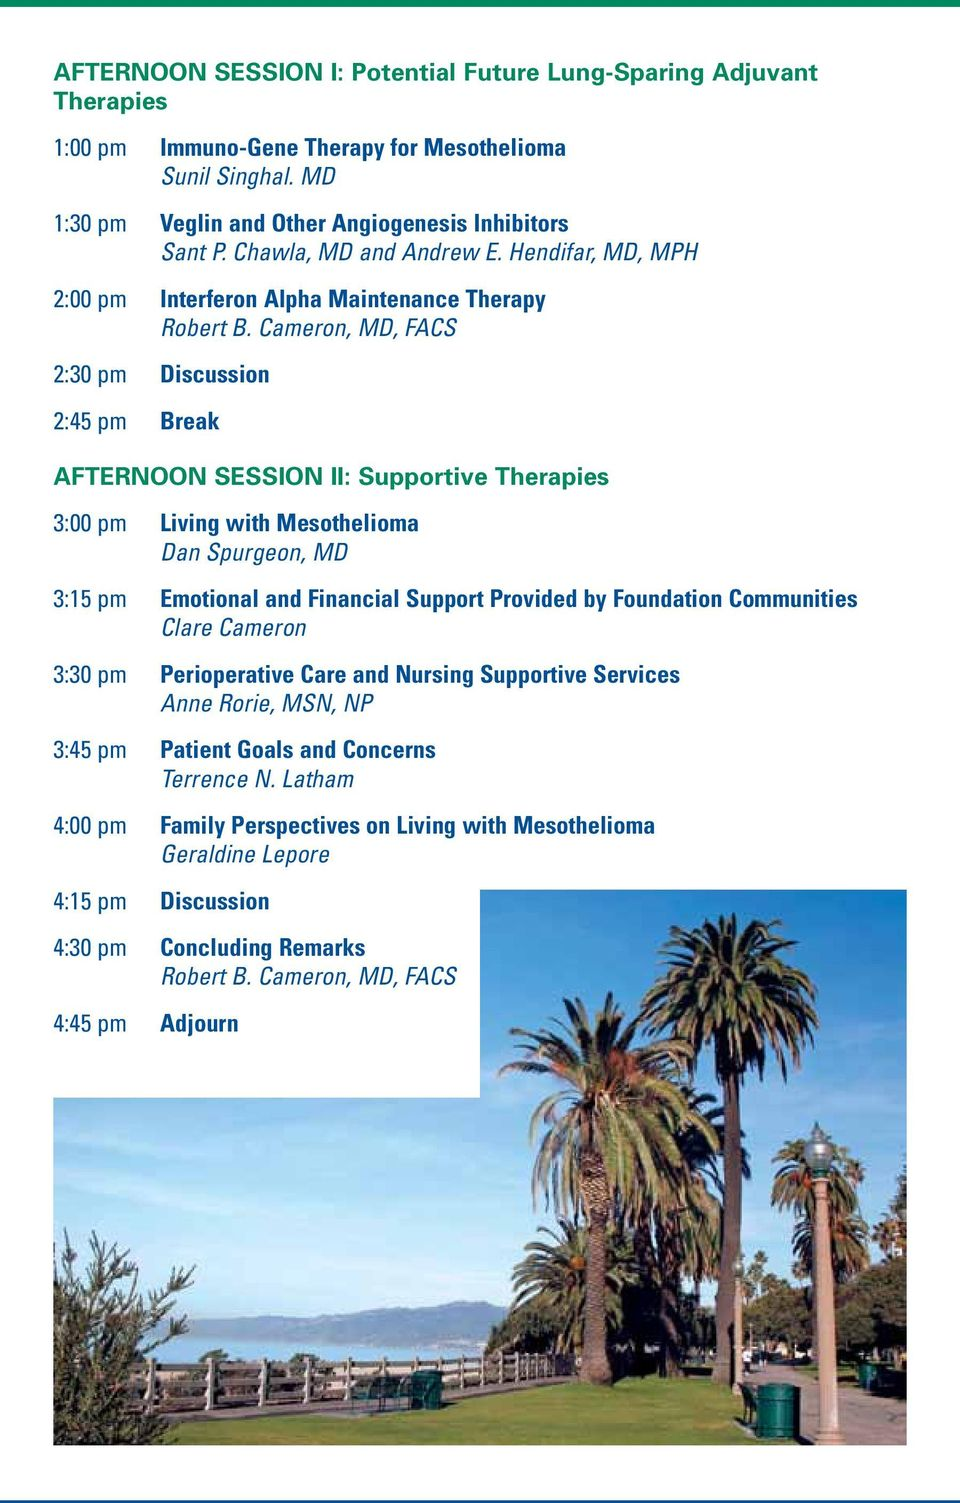 Hendifar, MD, MPH 2:00 pm Interferon Alpha Maintenance Therapy 2:30 pm Discussion 2:45 pm Break AFTERNOON SESSION II: Supportive Therapies 3:00 pm Living with Mesothelioma Dan Spurgeon, MD